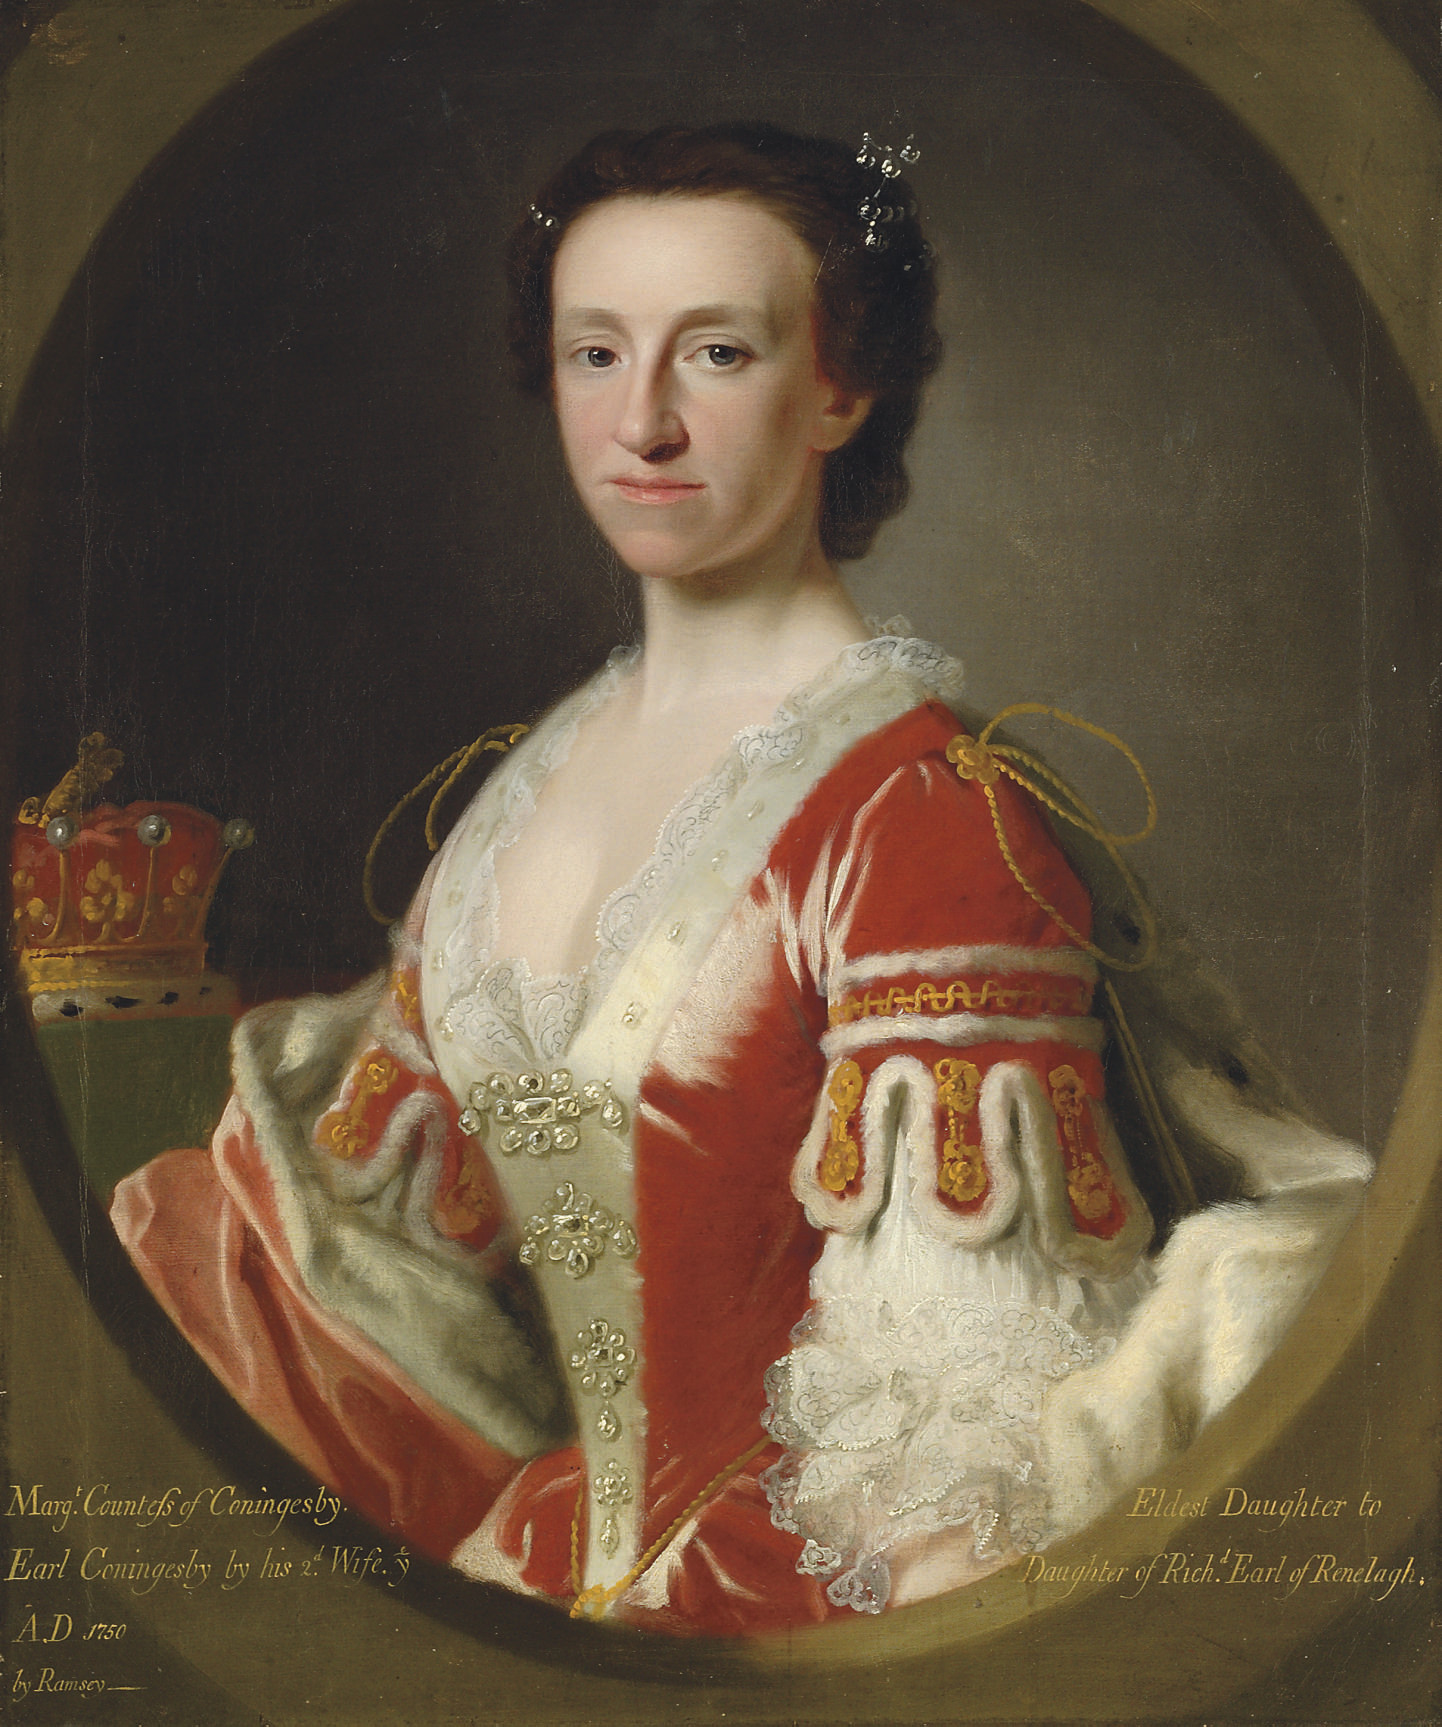 Allan Ramsay (1713-1784) and S